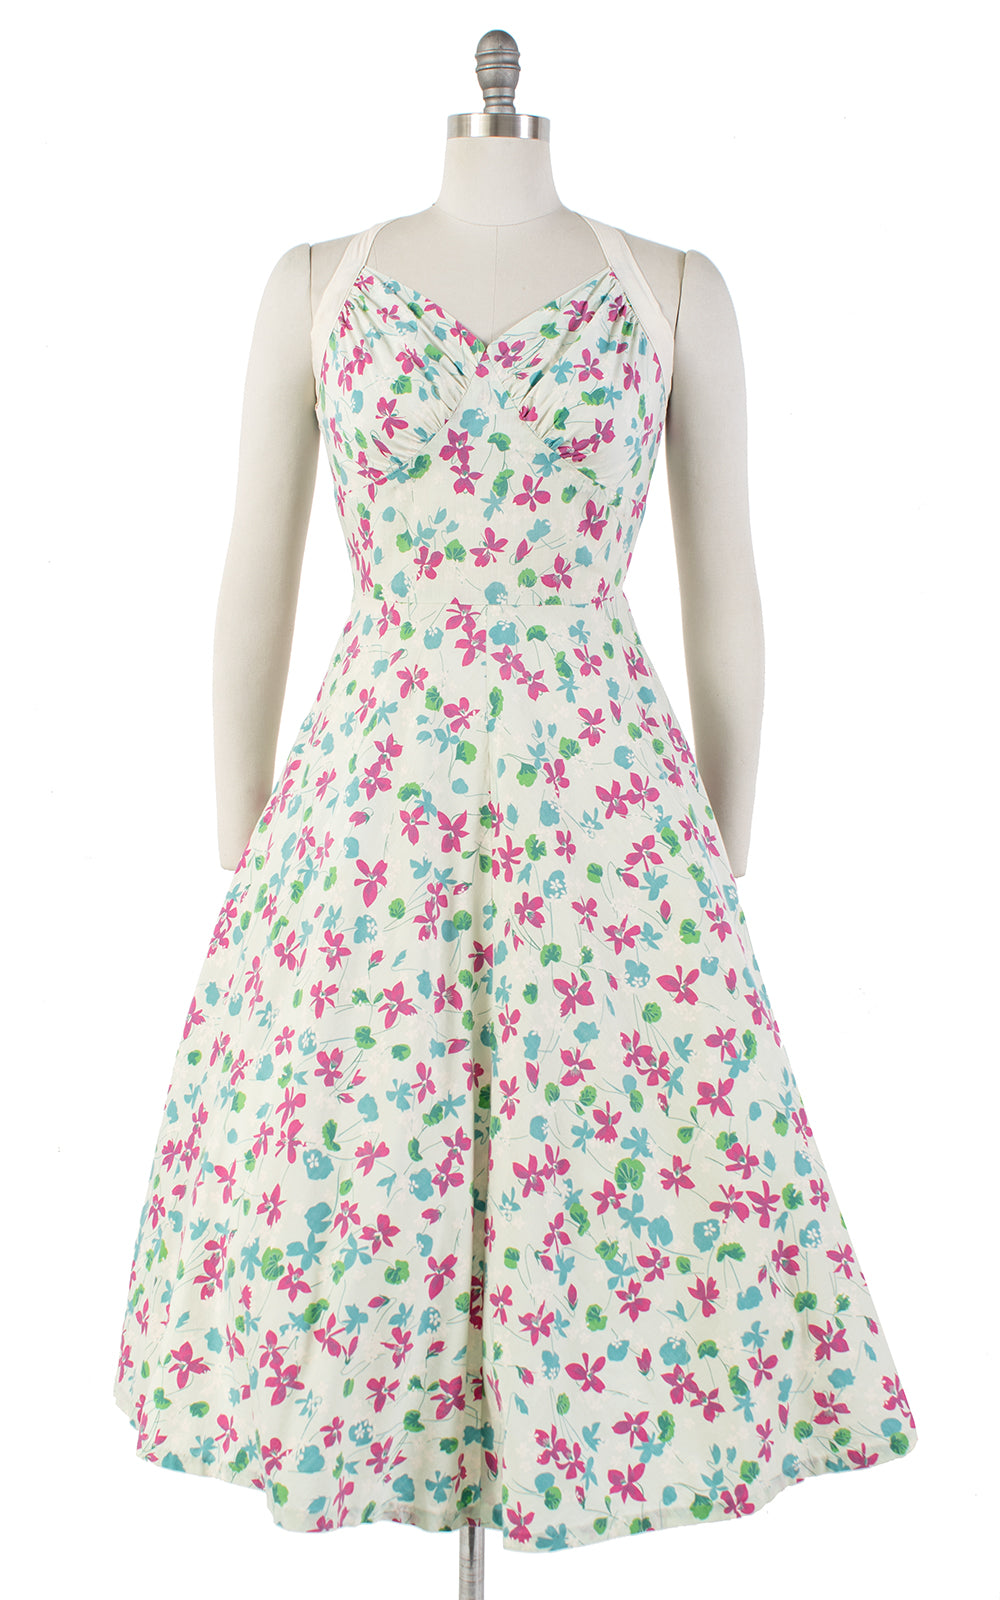 1950s Floral Halter Strap Cotton Sundress | small/medium